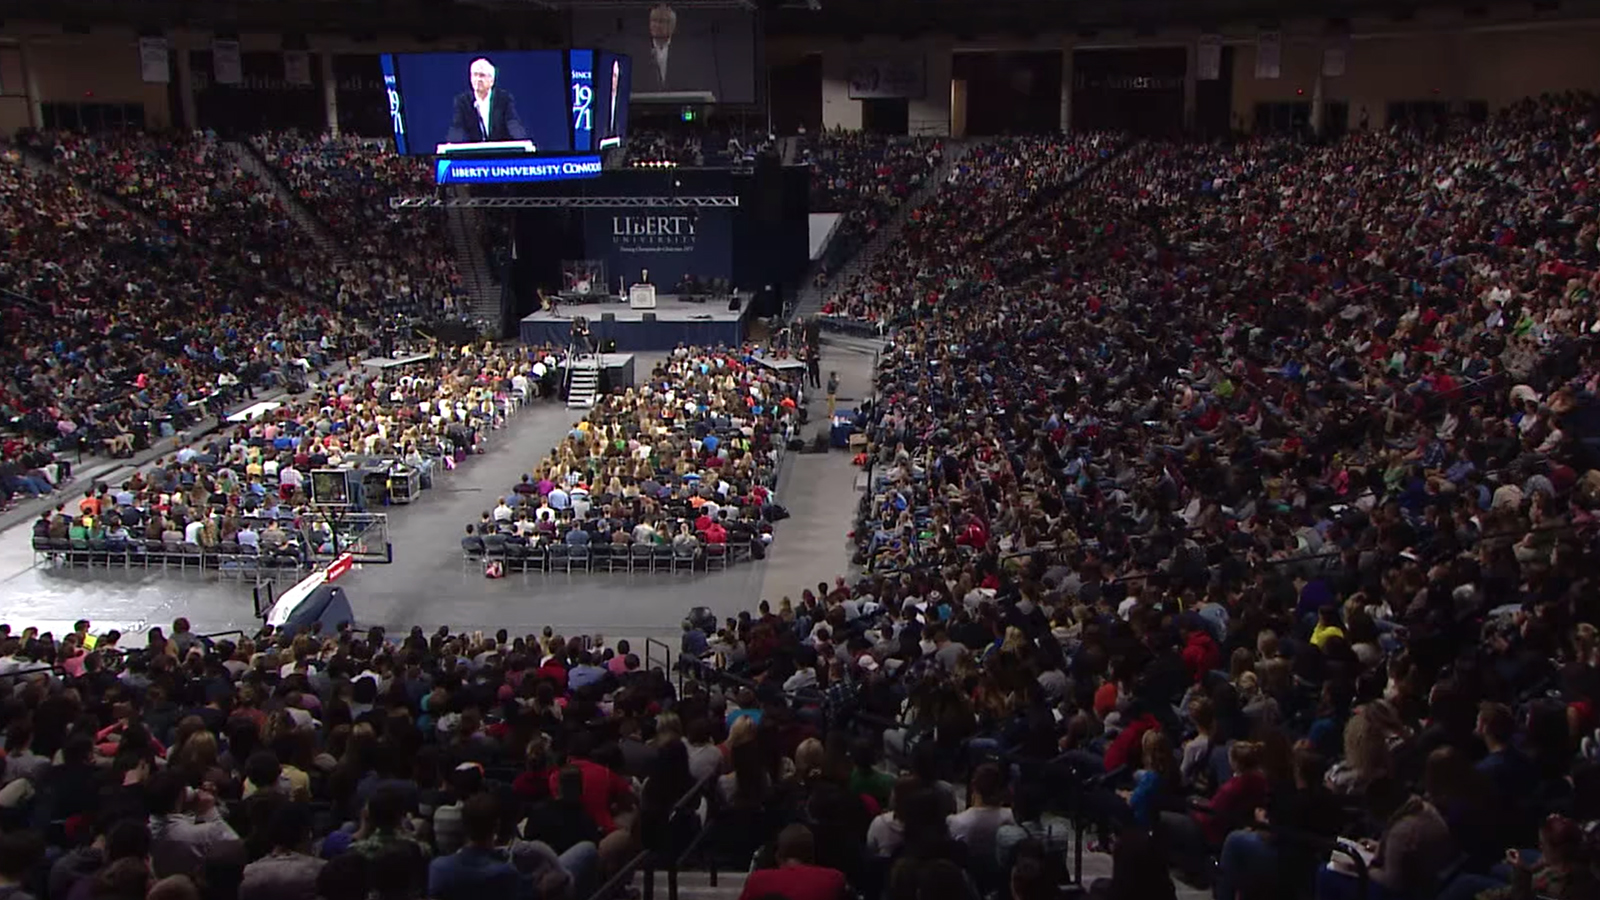 Speaking at Liberty University